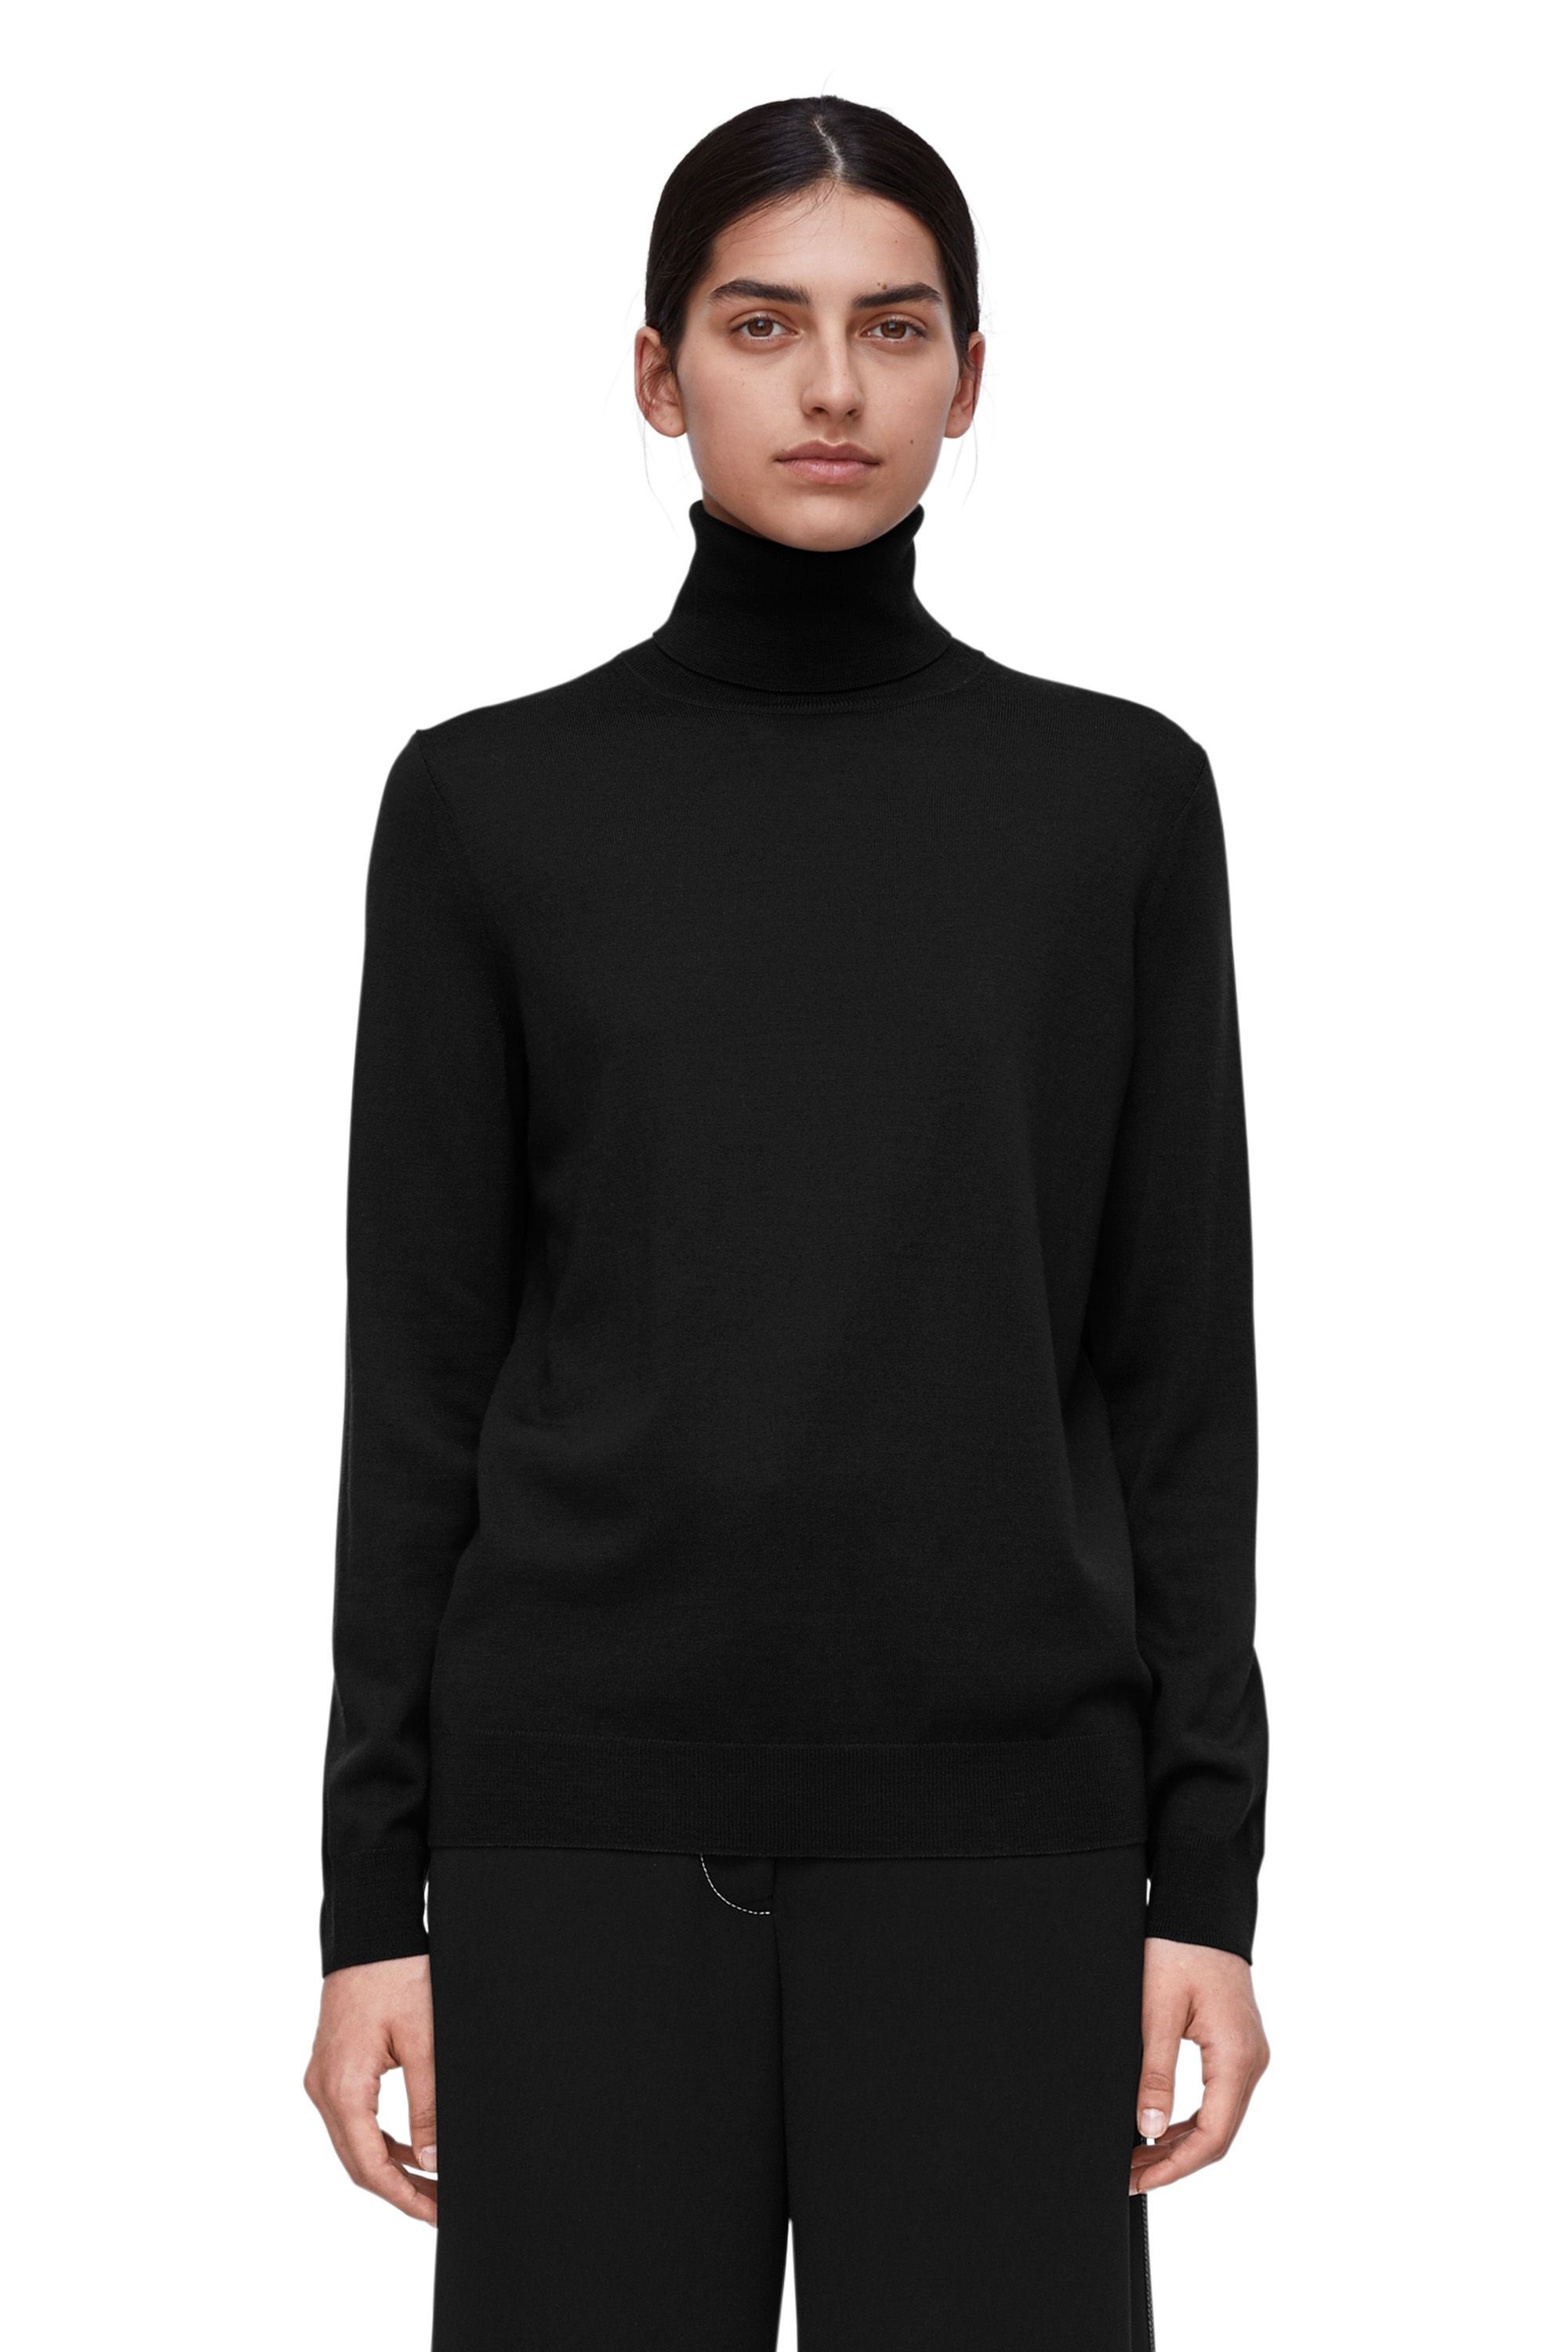 bd2538cdd69358 Merino Roll-Neck Jumper - Black - Knitwear | WISH LIST | Roll neck ...